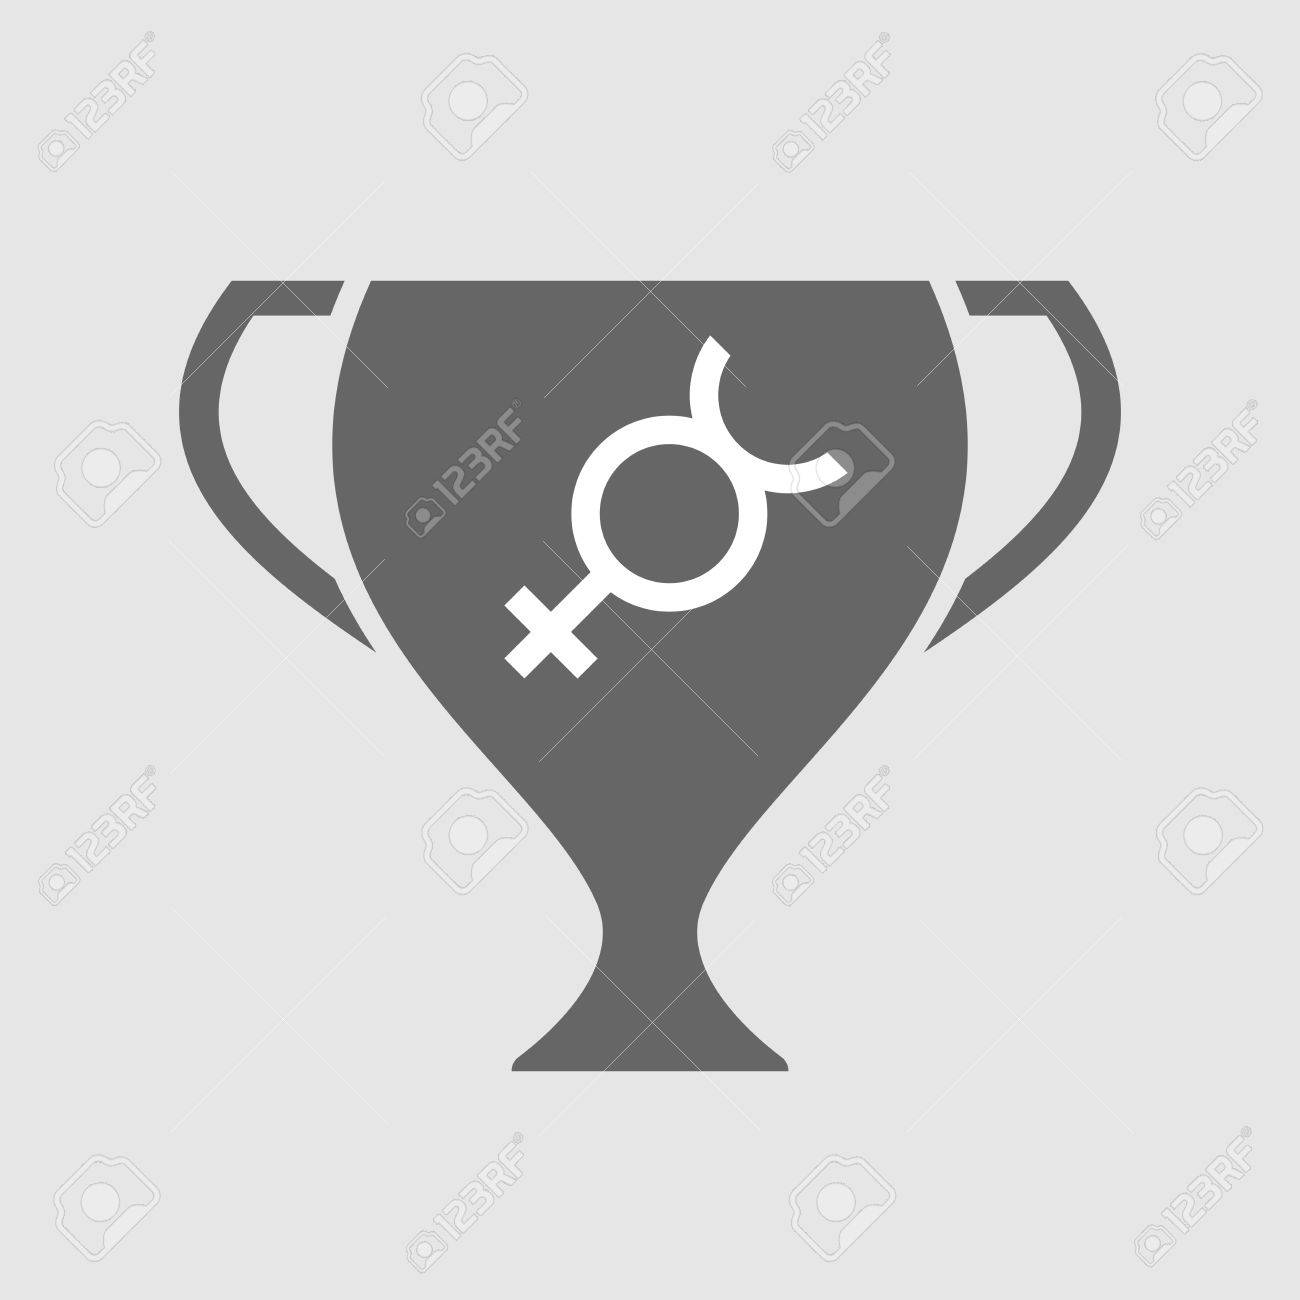 Illustration Of An Isolated Award Cup Vector Icon With The Mercury